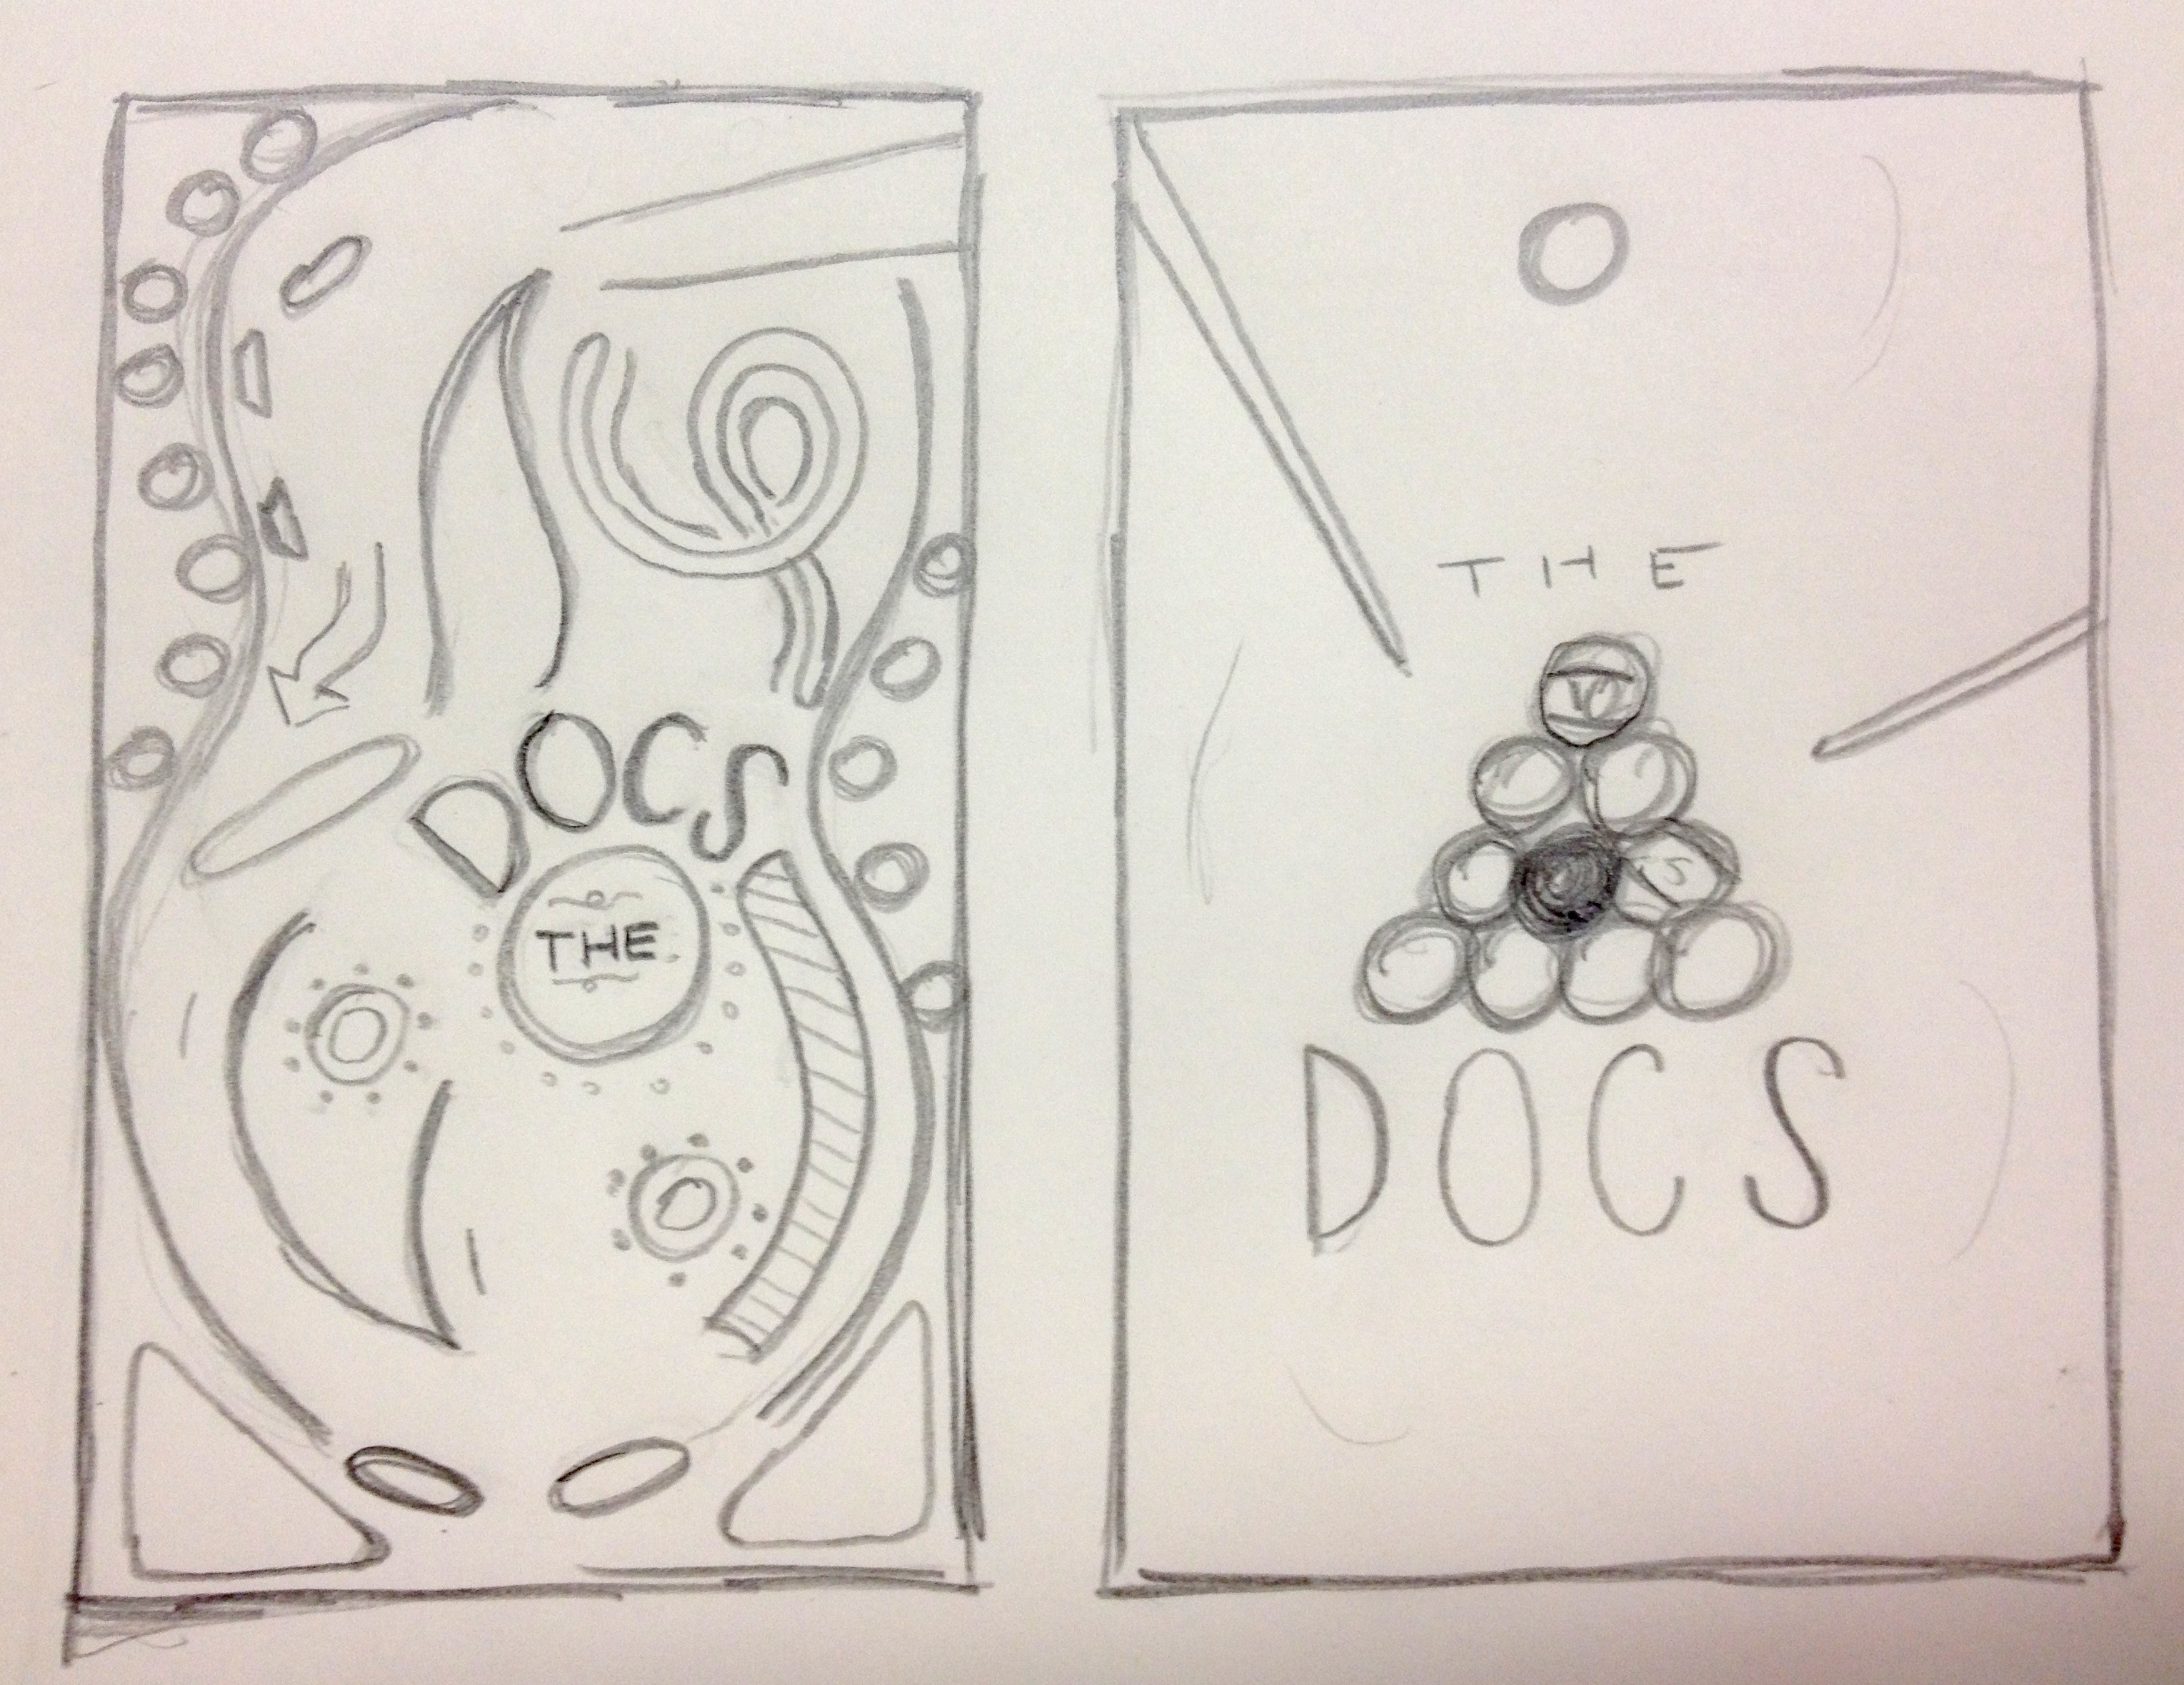 The Docs  - image 10 - student project